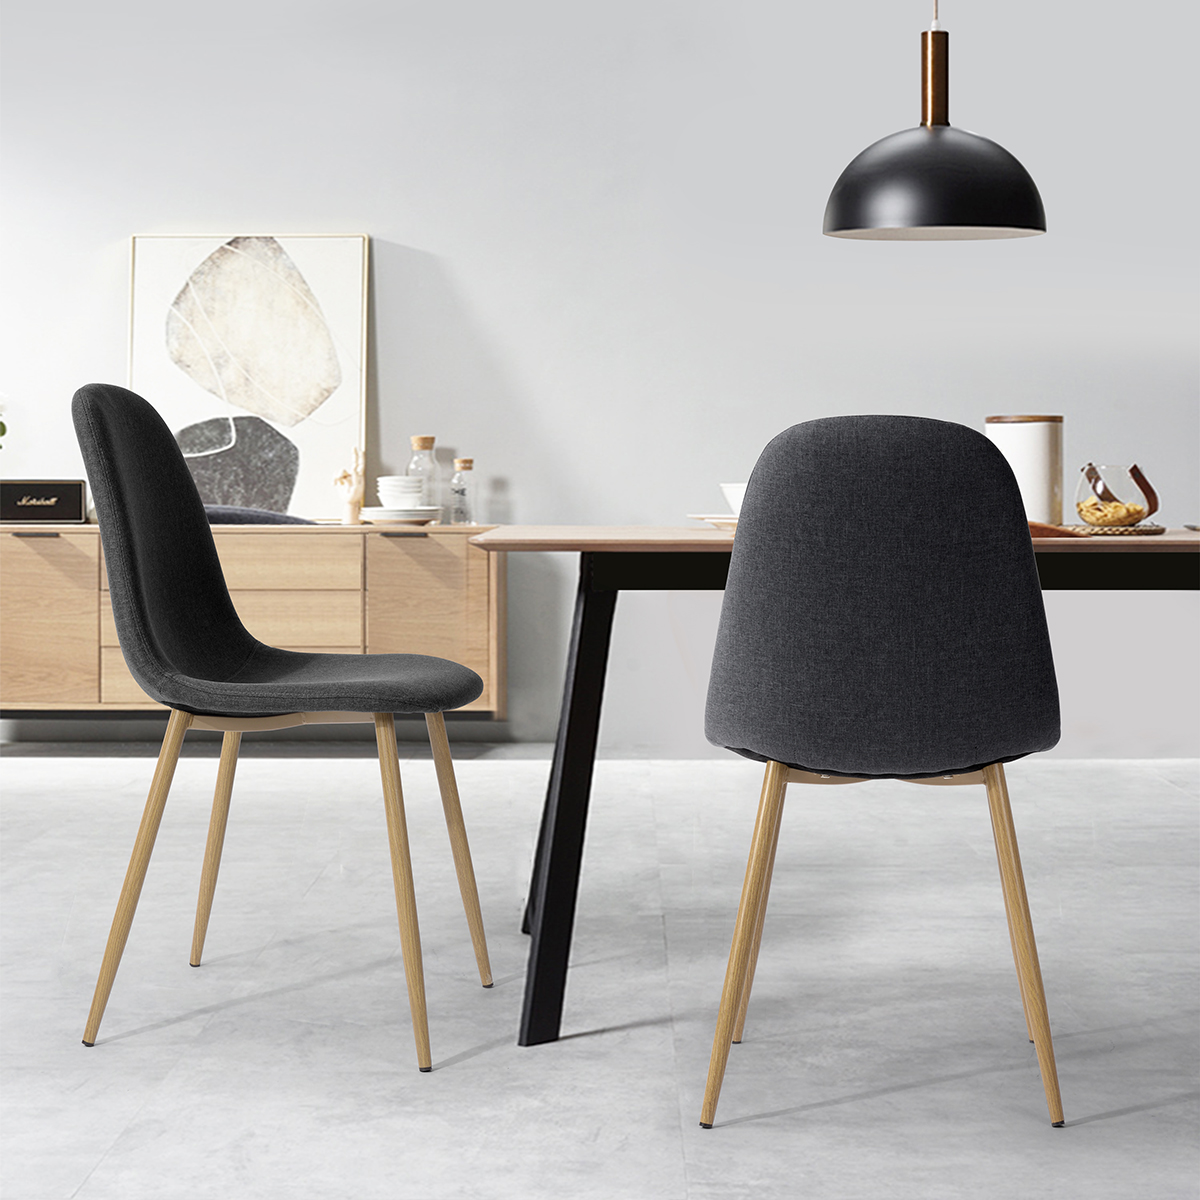 Eames Dining Chairs Set of 12 Seat for Home Kitchen Chairs Black